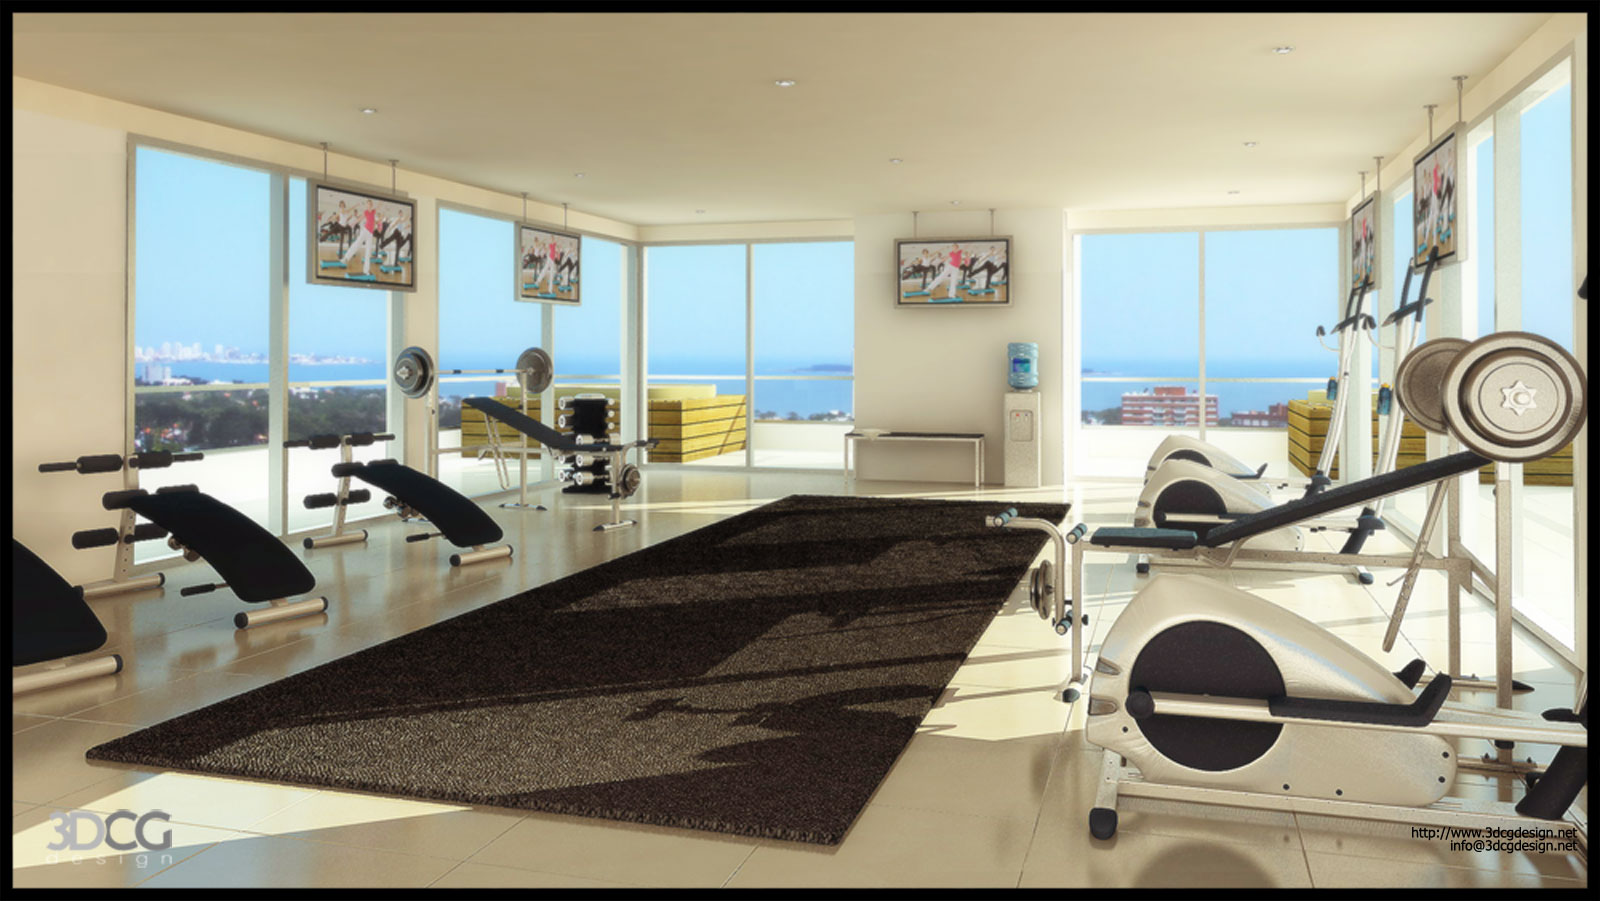 Interior Design Ideas Interior Designs Home Design Ideas Room - Home gym design ideas